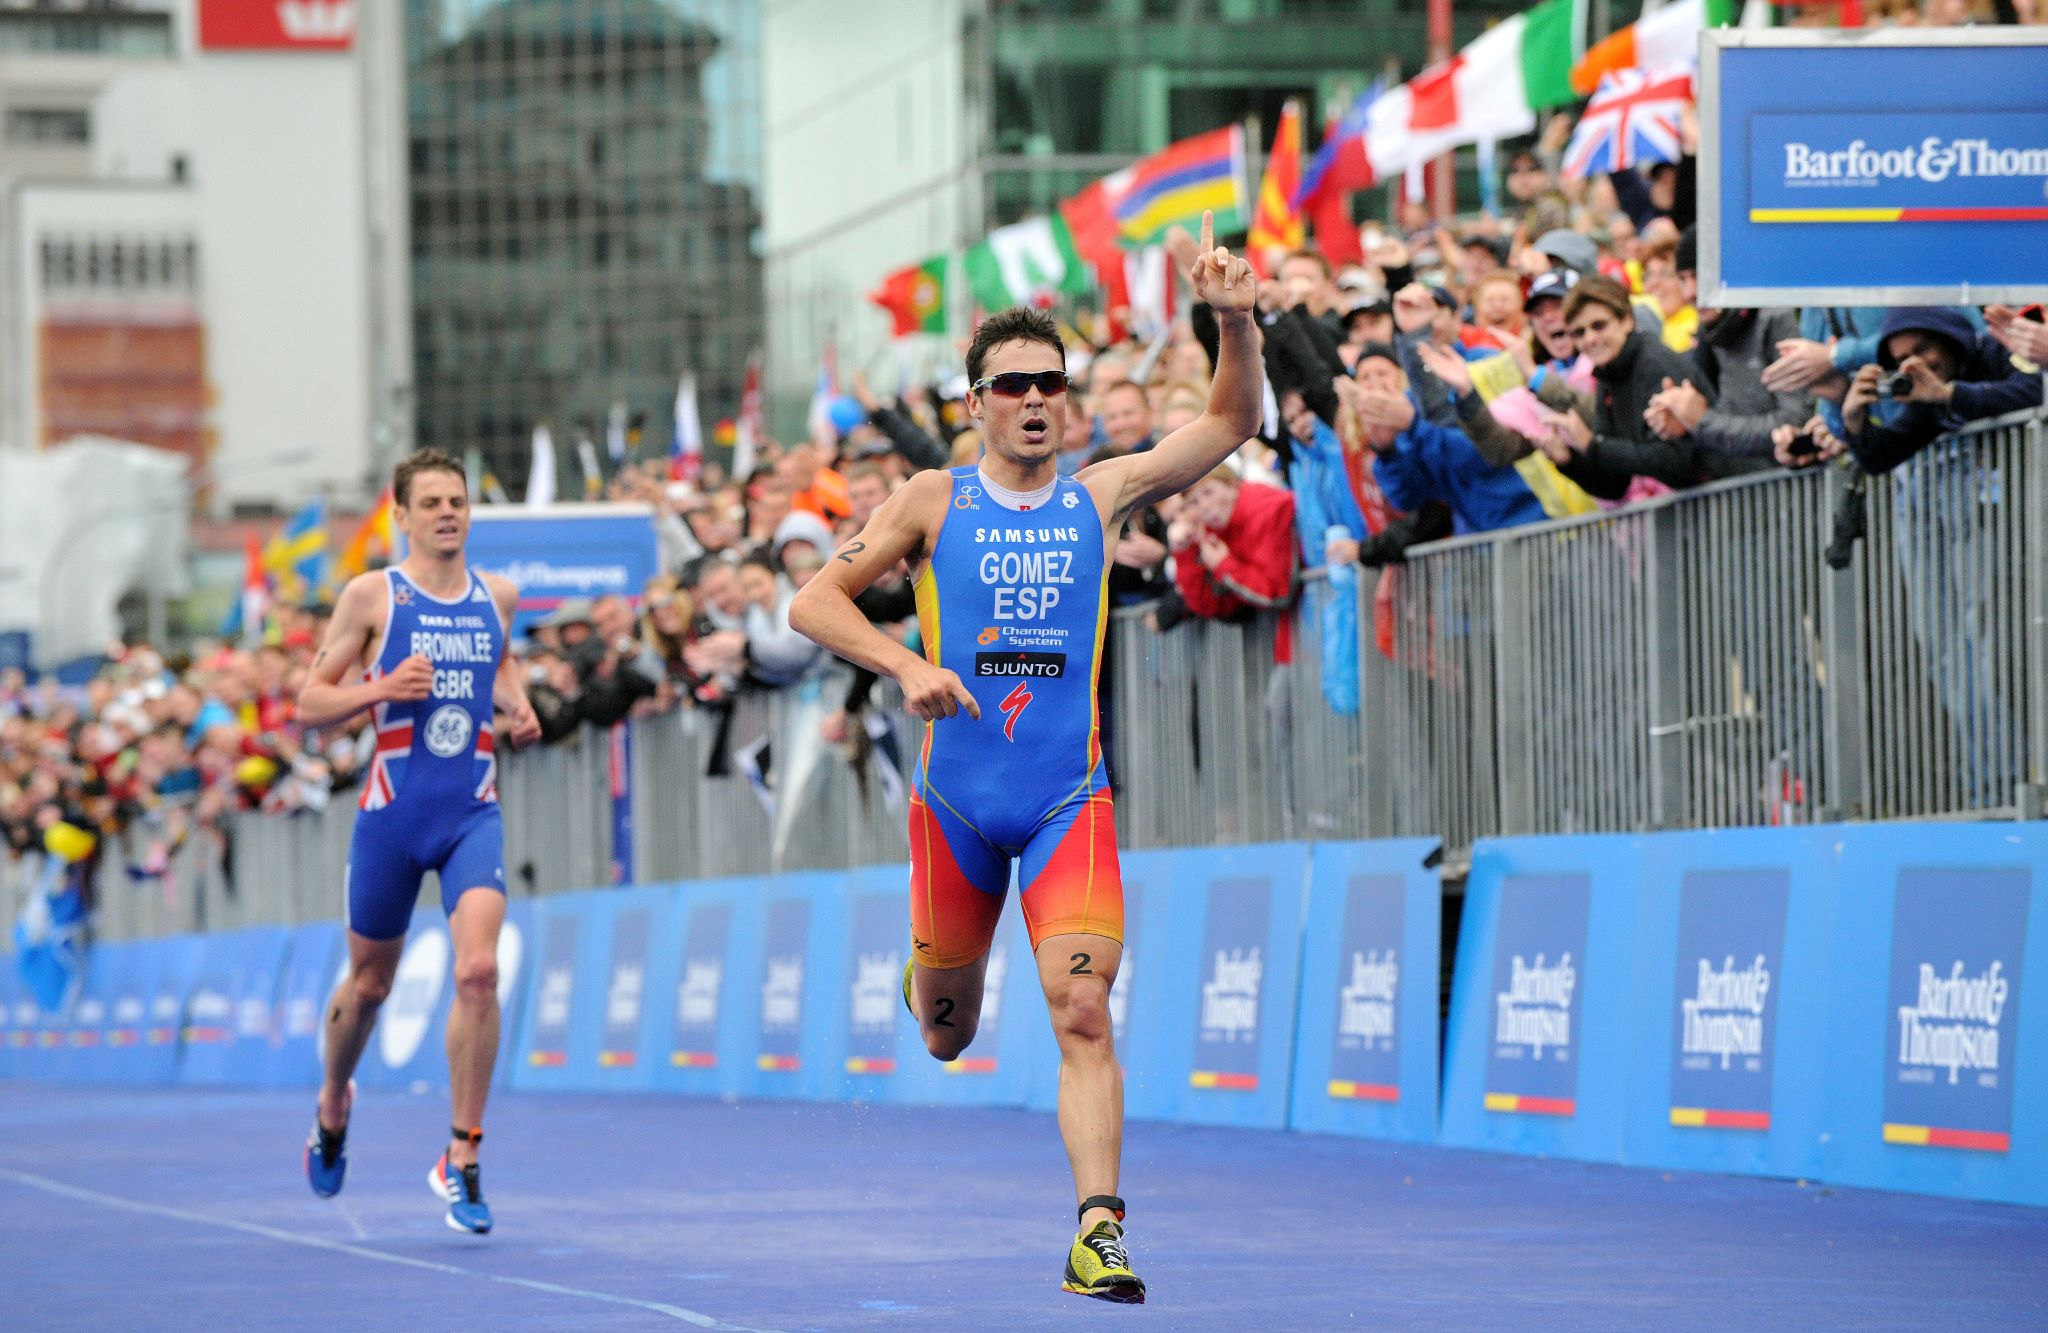 Fitness Javier Gomez Noya took down Great Britain's Jonathan Brownlee in an impressive run finish at the International Triathlon Union Grand Final in Auckland.